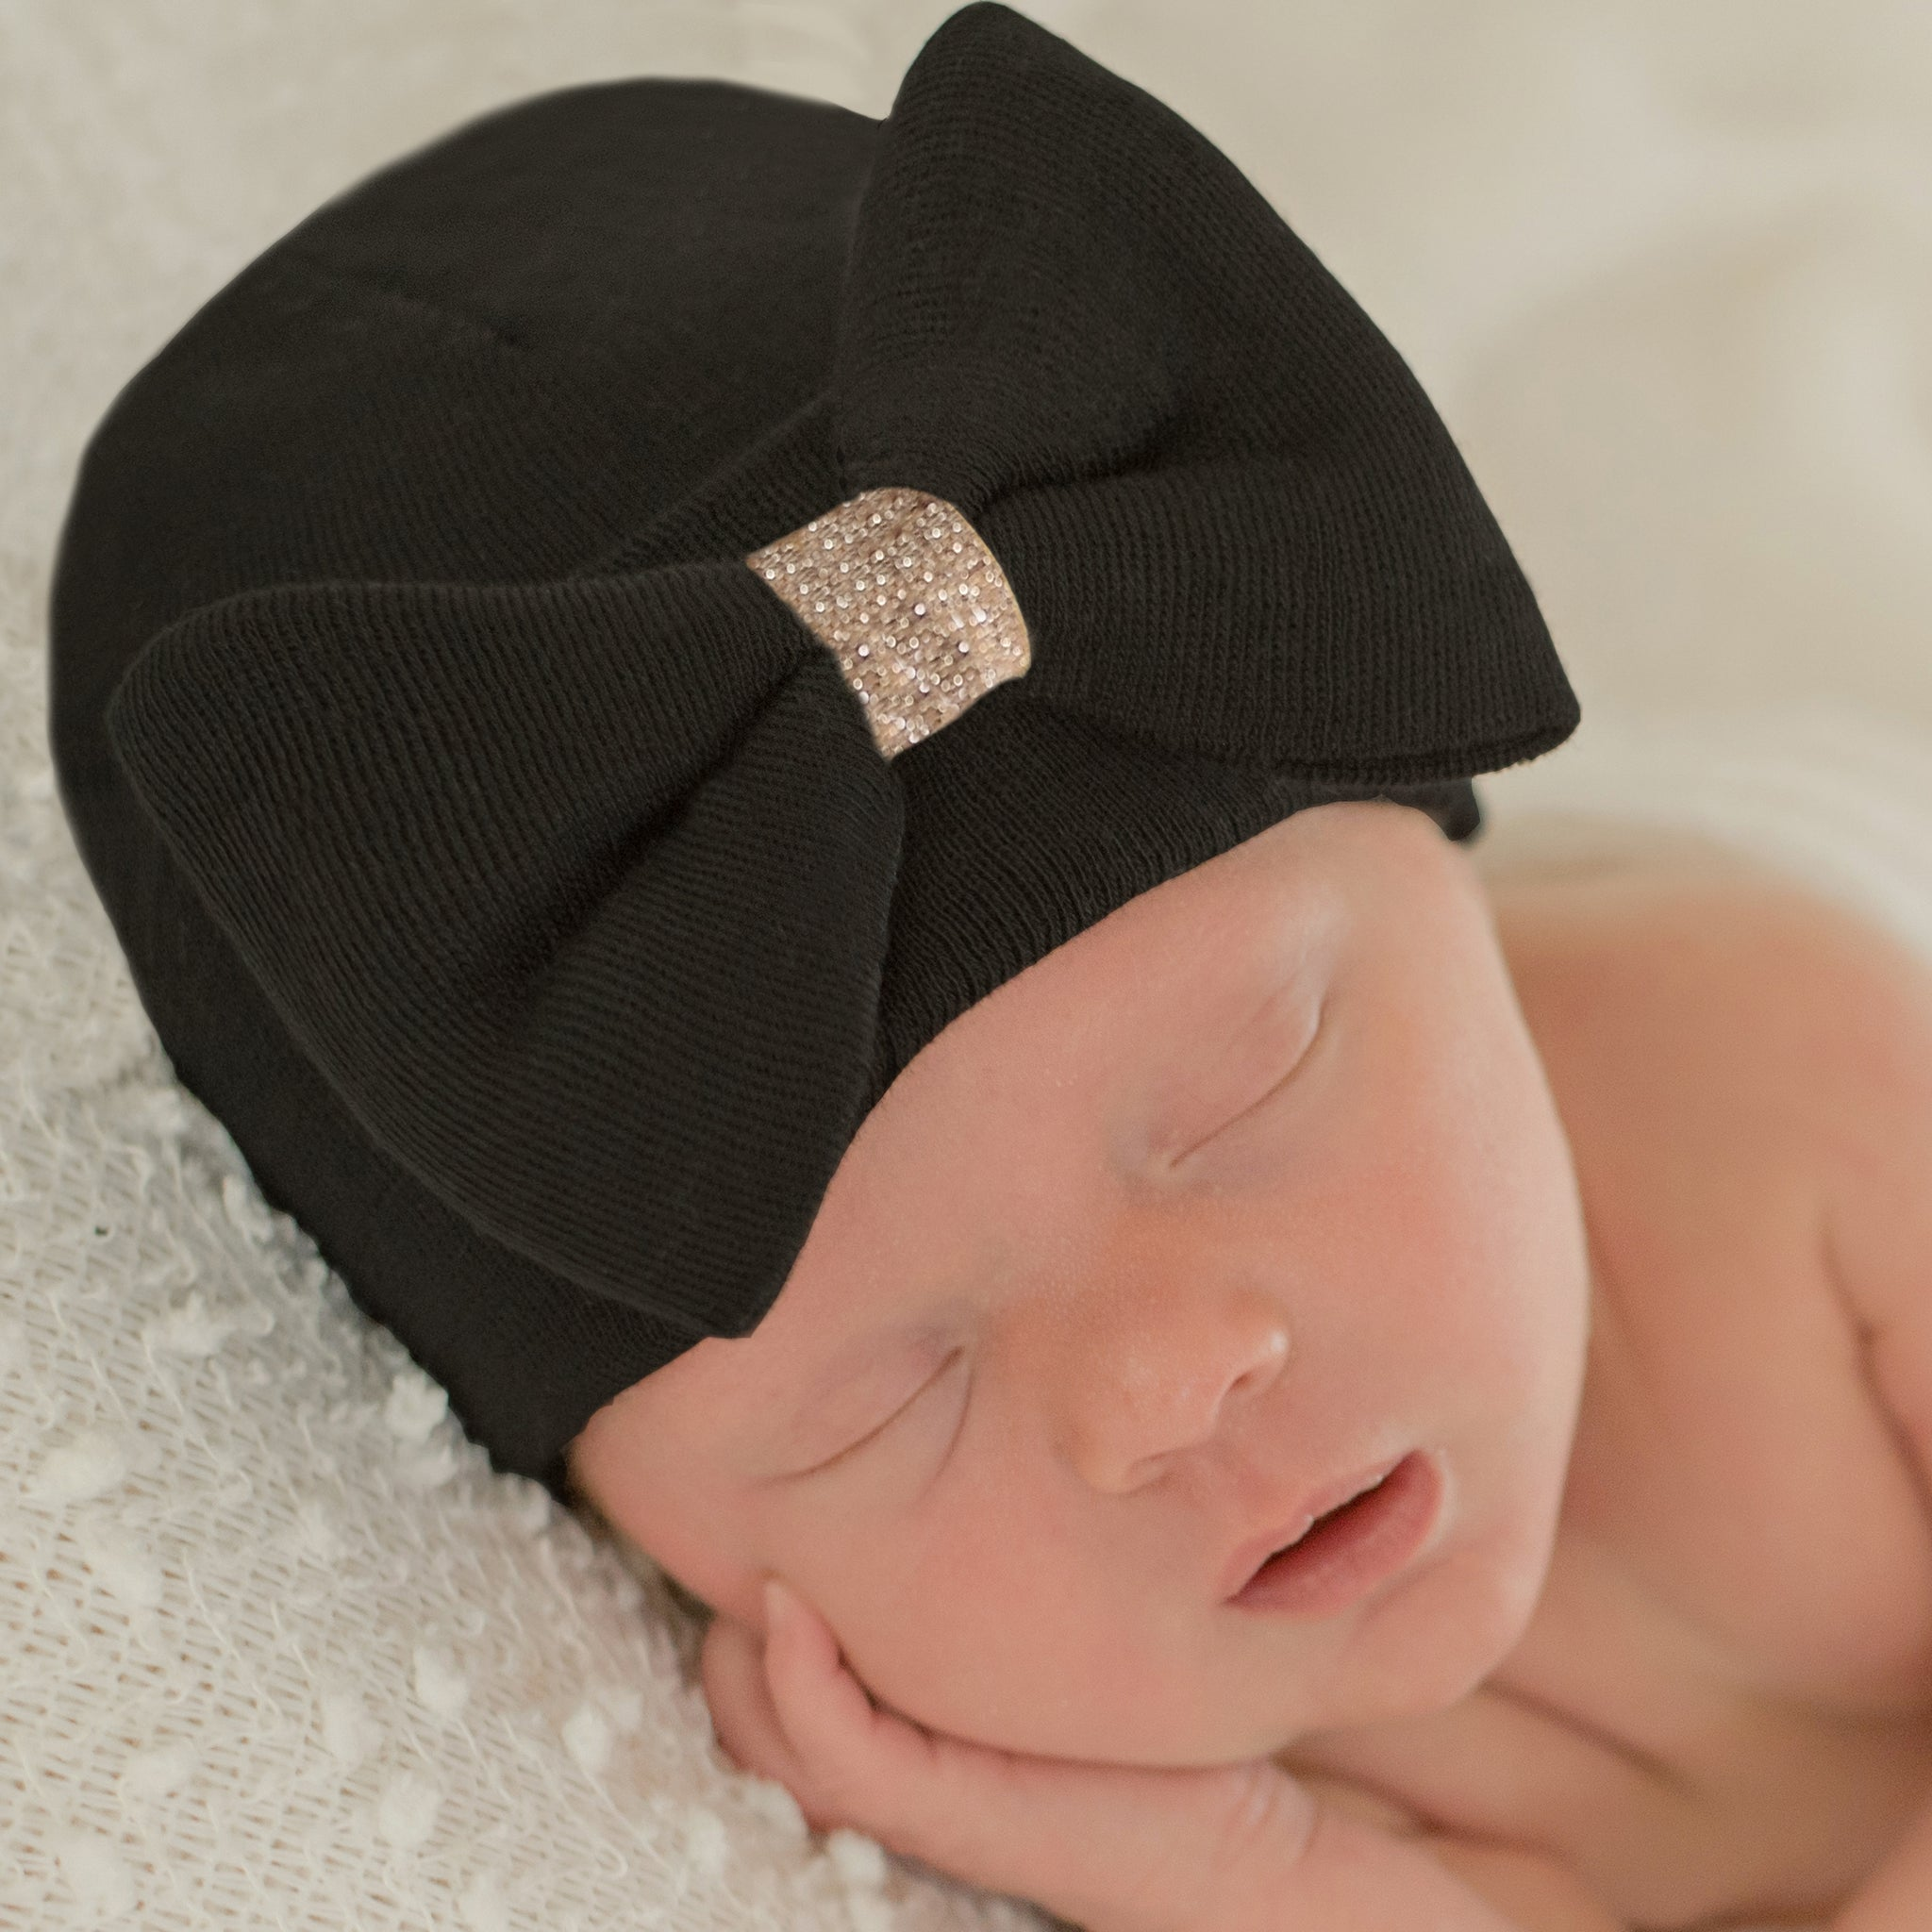 ILYBEAN Black GOLD SHIMMER BOW Newborn Girl Hospital Hat- Newborn Girl Nursery Beanie